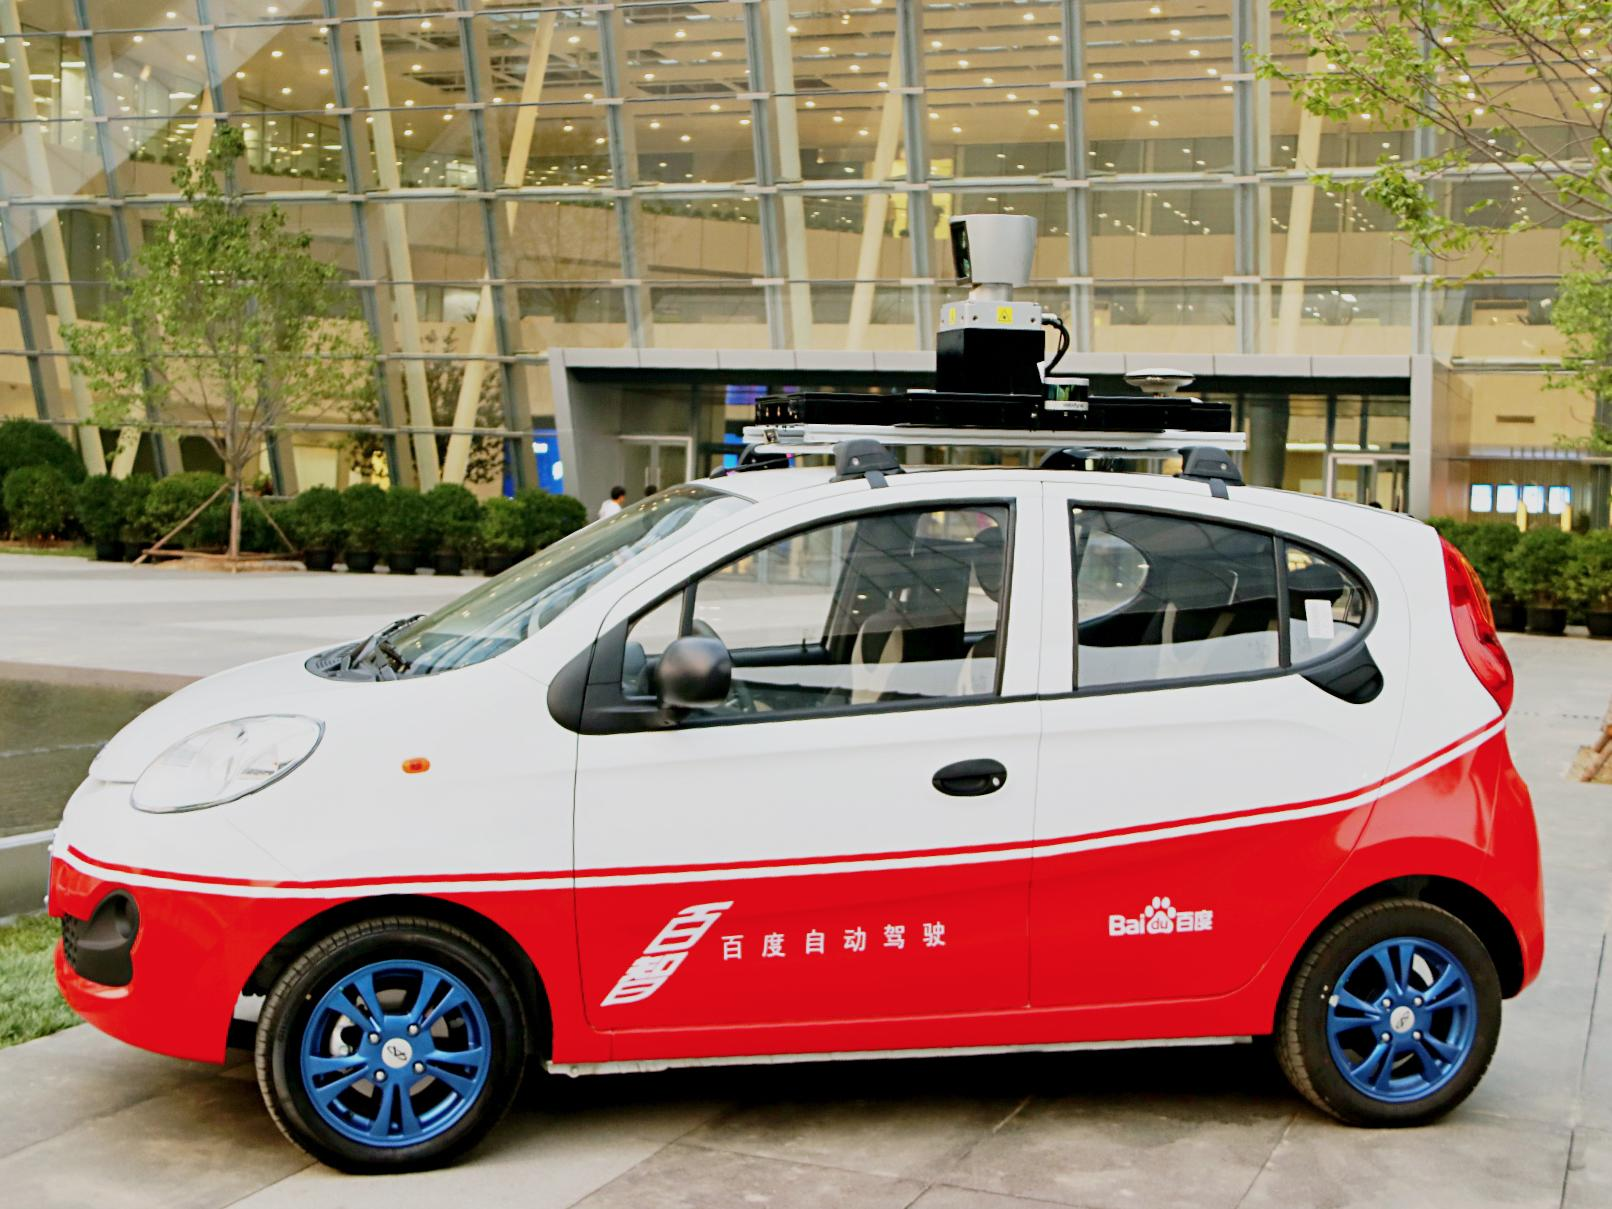 The Google of China has unveiled its new all-electric, self-driving car